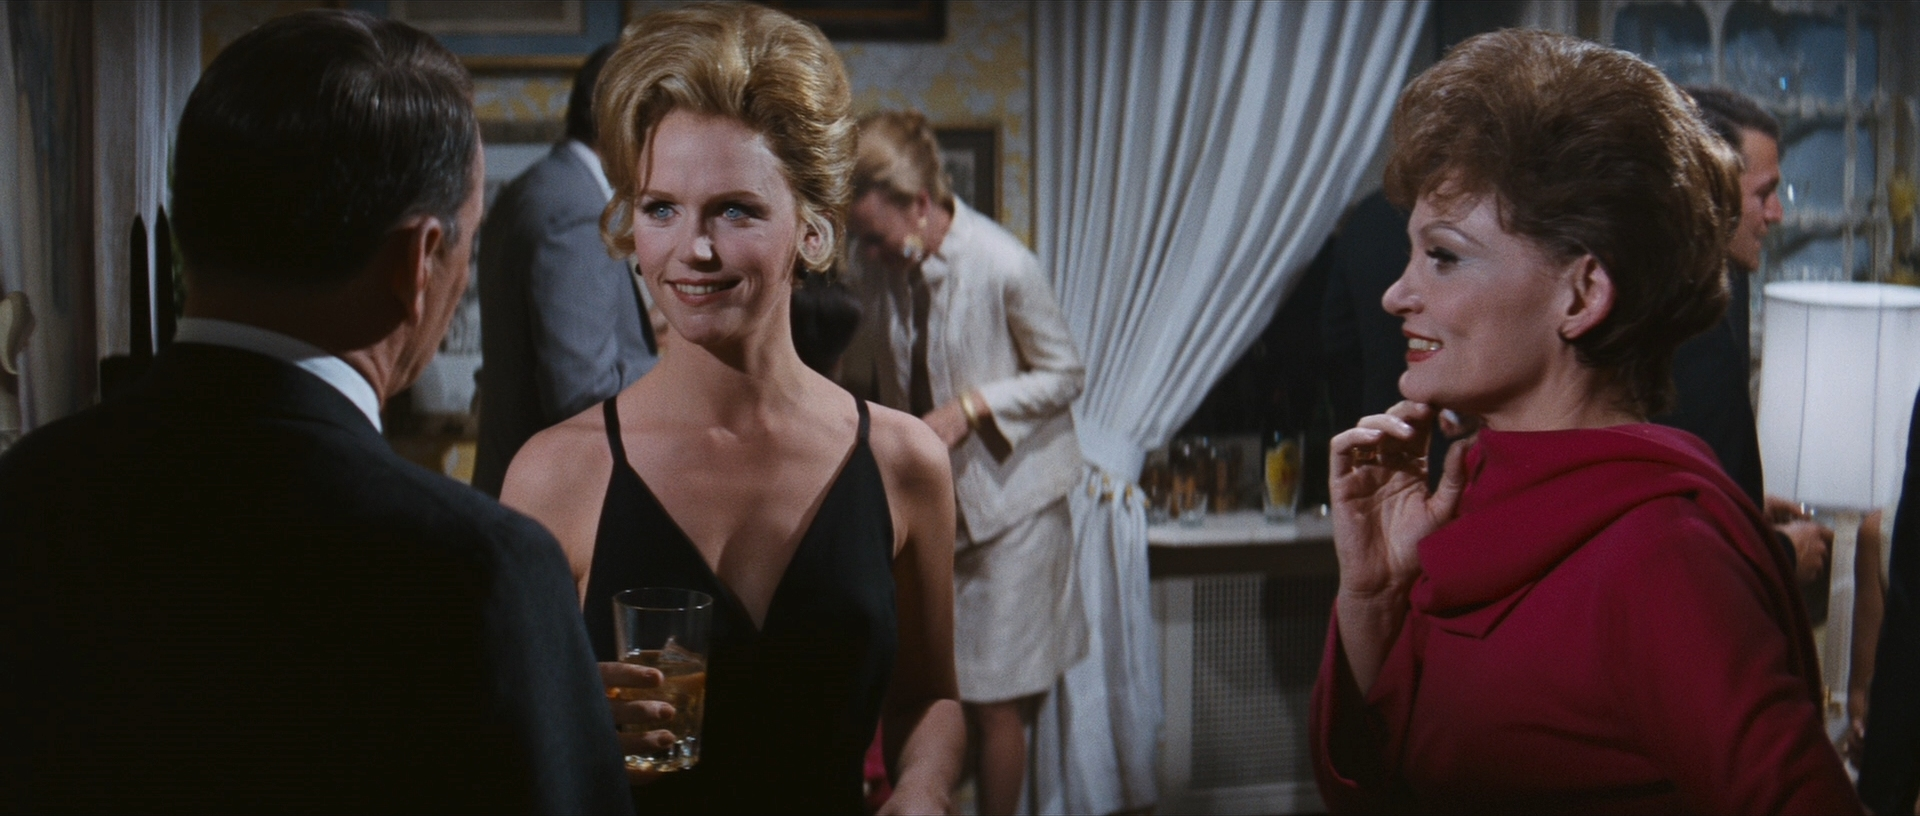 The Detective - Lee Remick